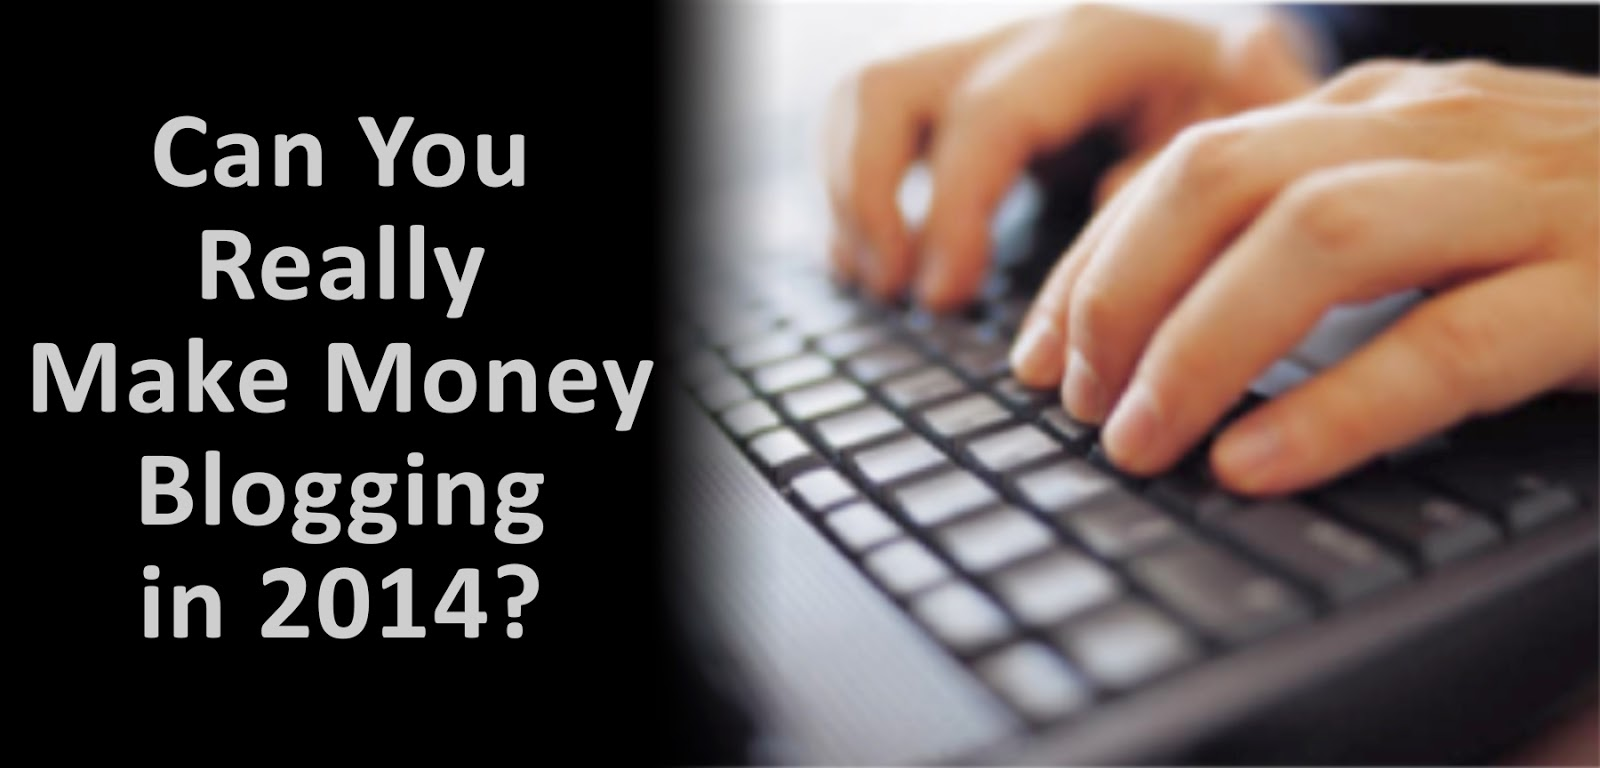 Can You Really Make Money Blogging in 2014?